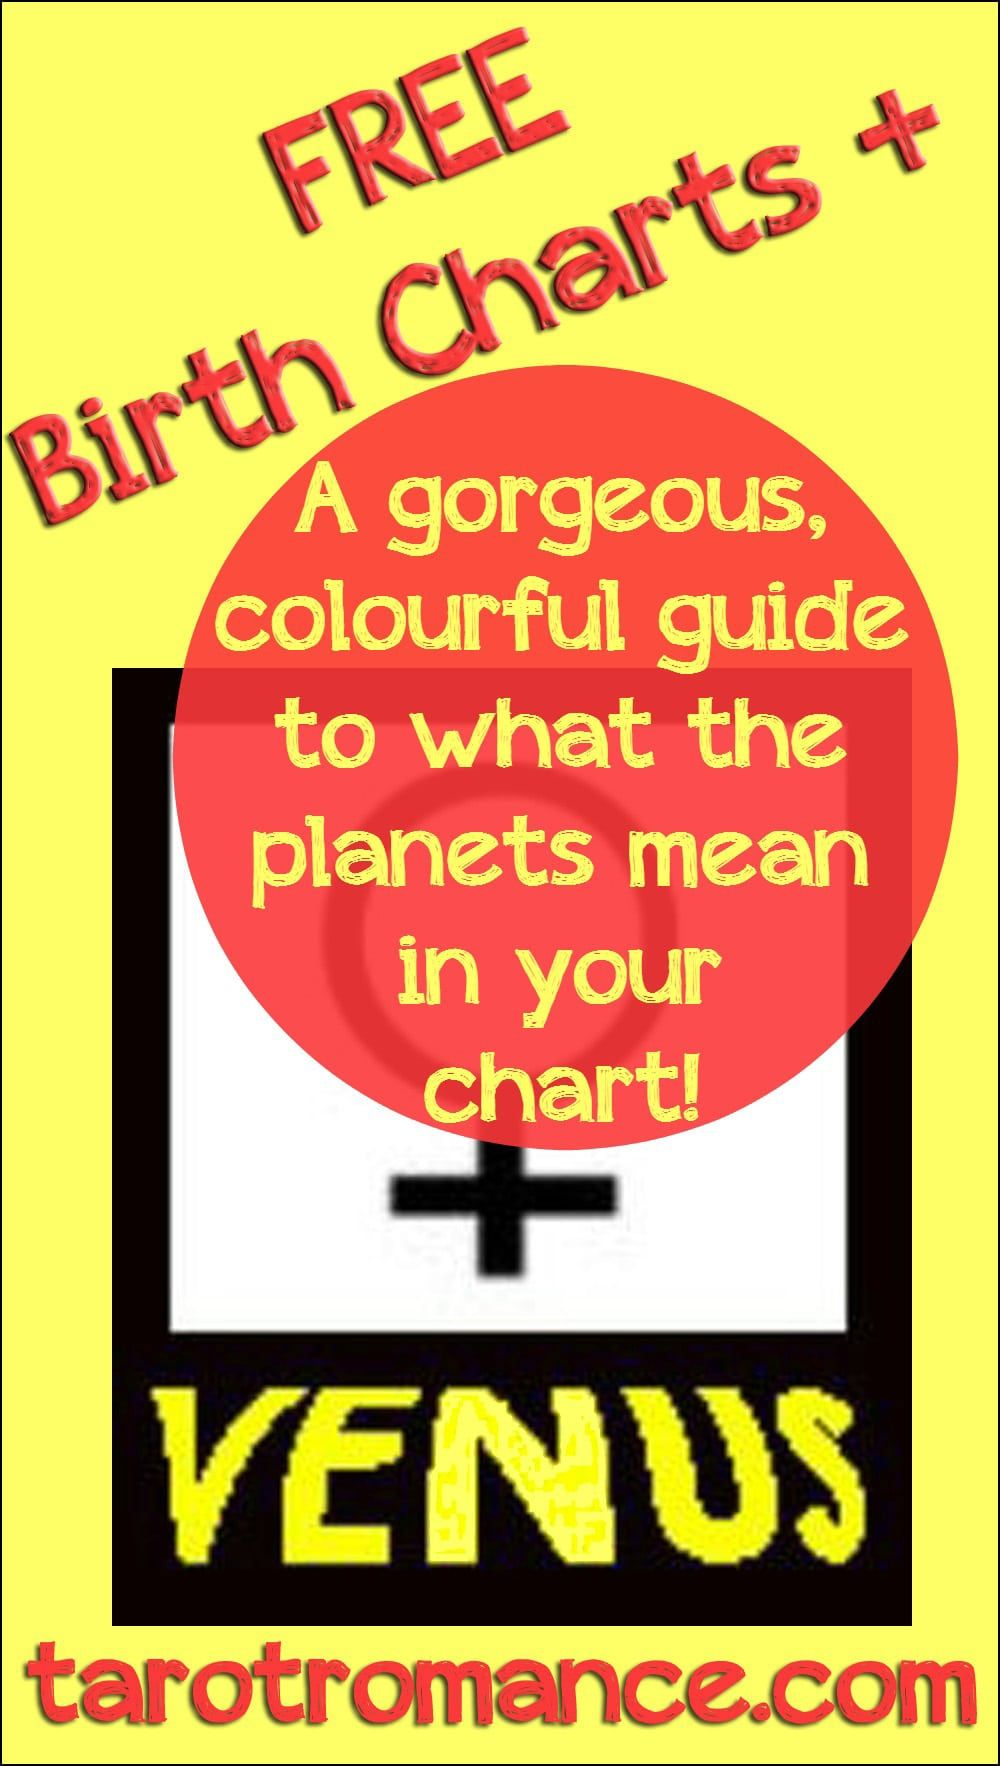 Free daily horoscopes birth charts guides to the planets and free birth chart geenschuldenfo Gallery